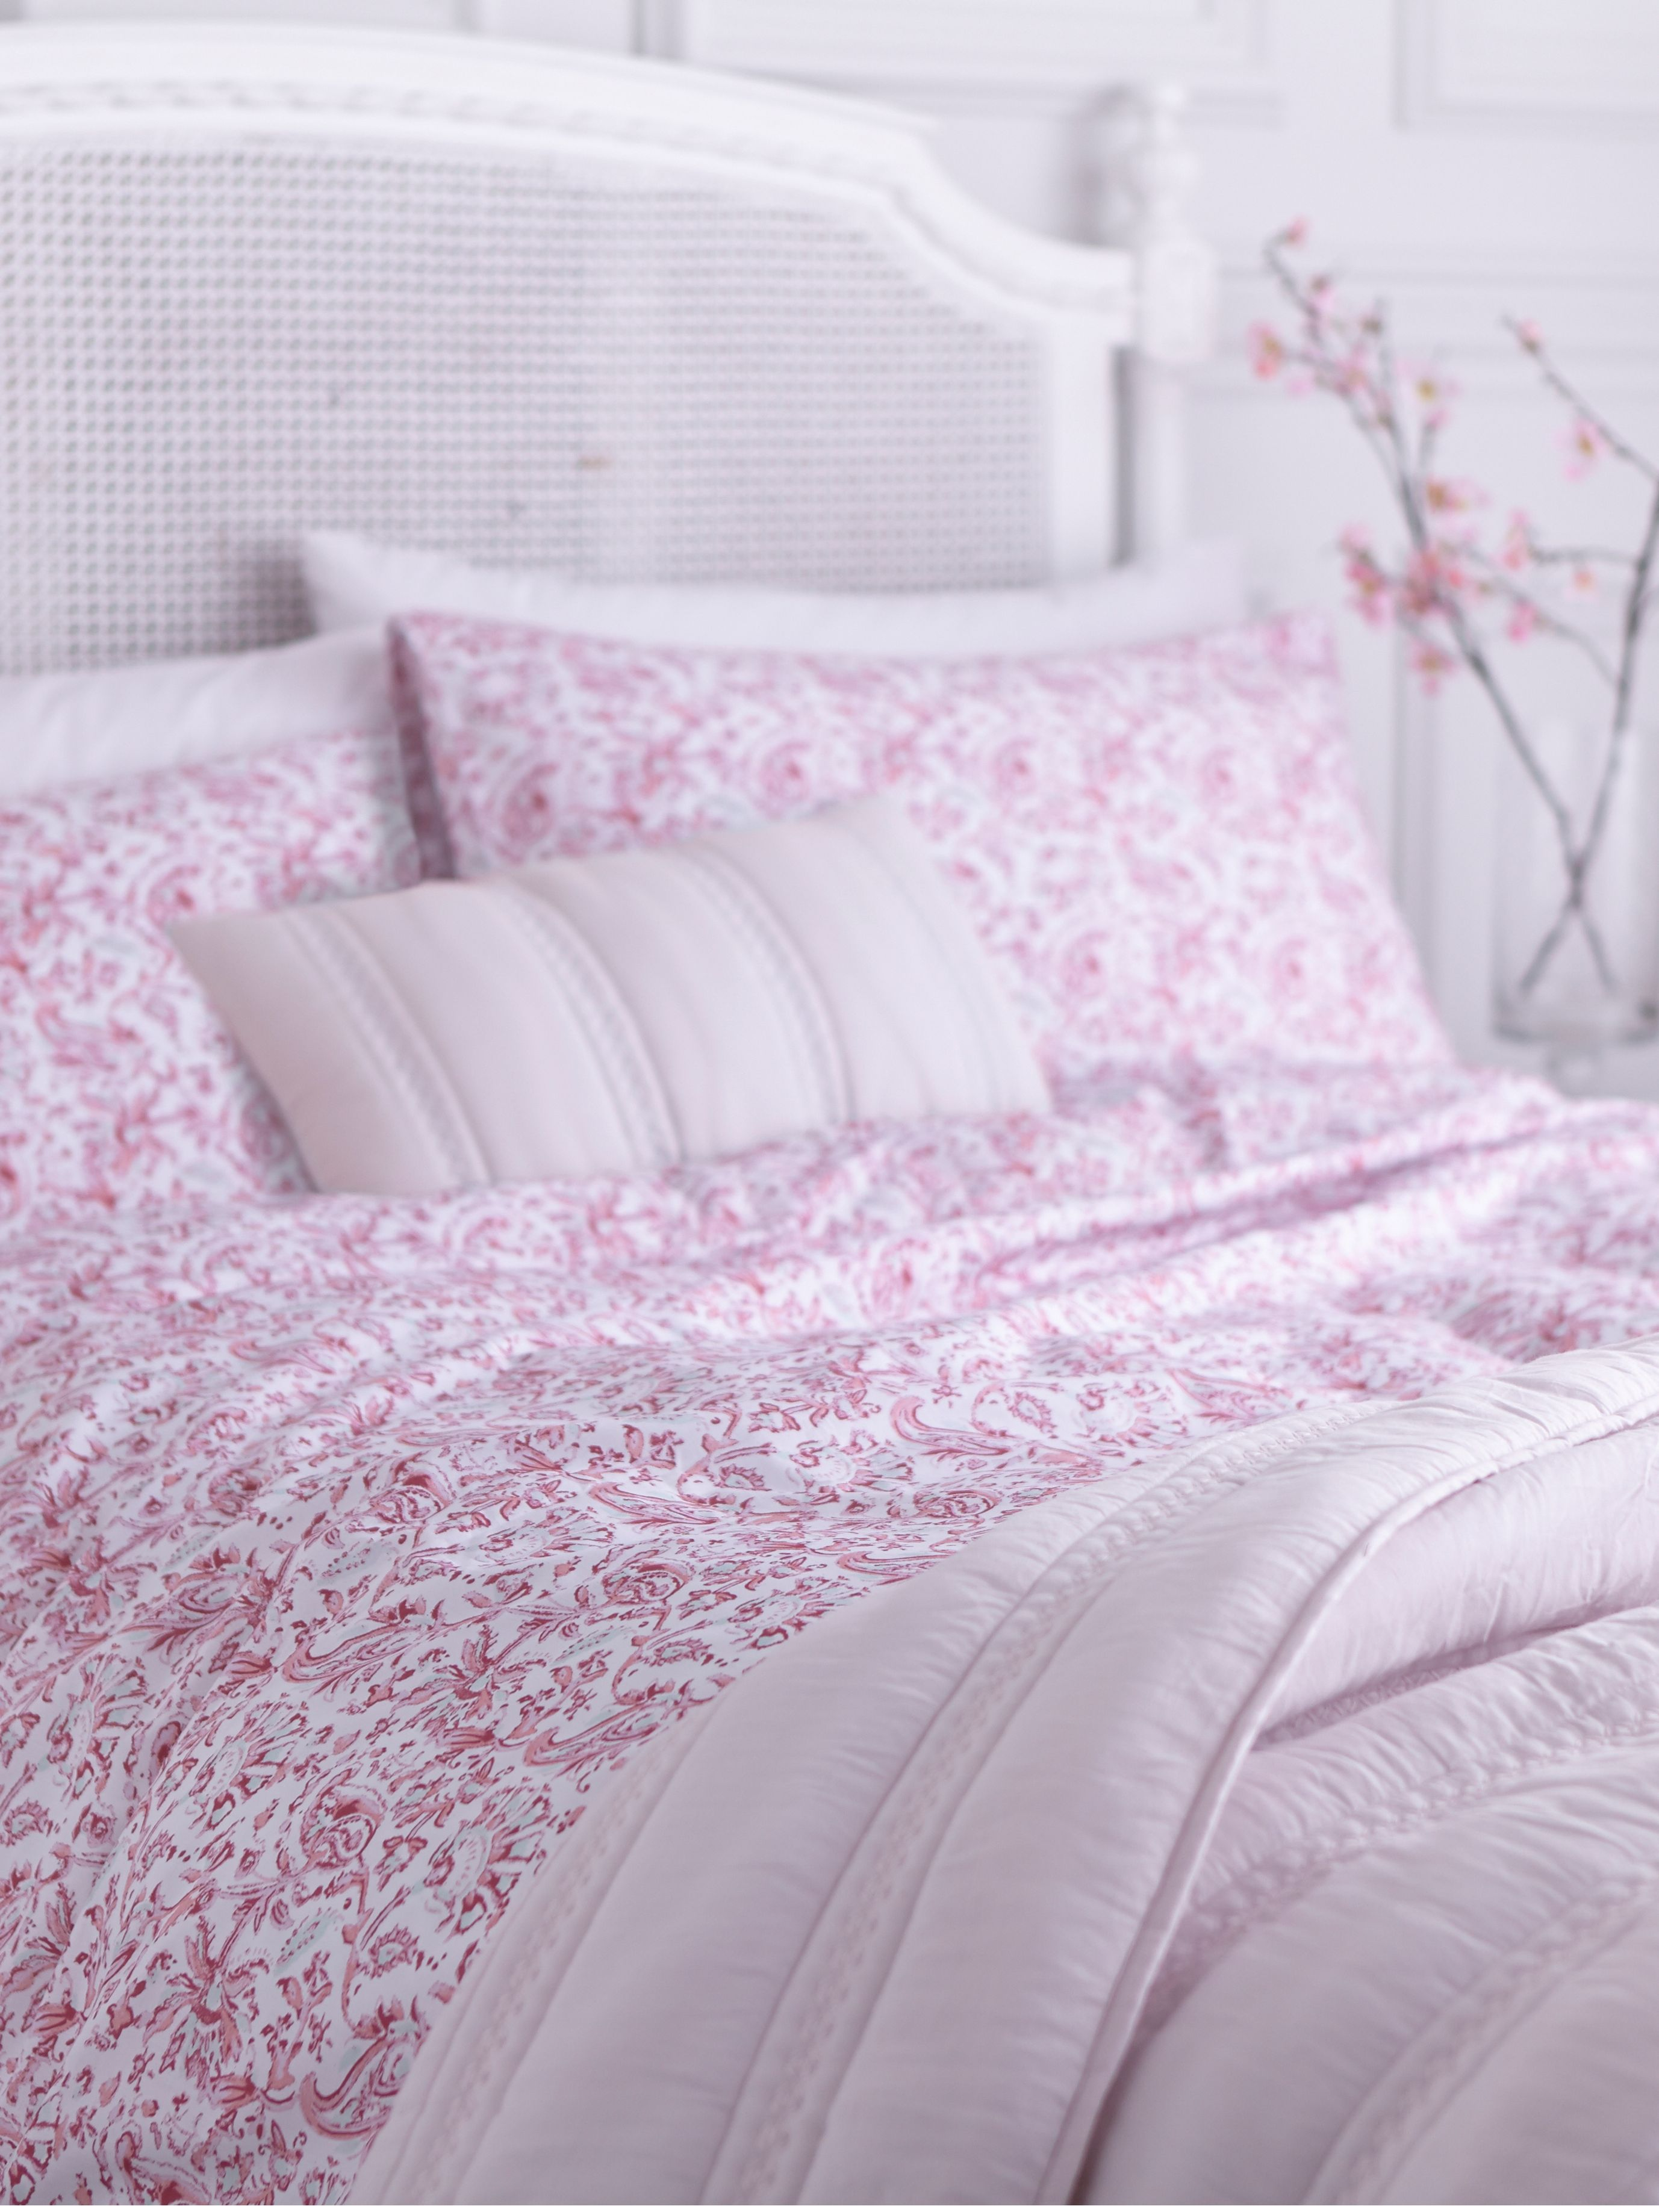 Indes floral single duvet cover